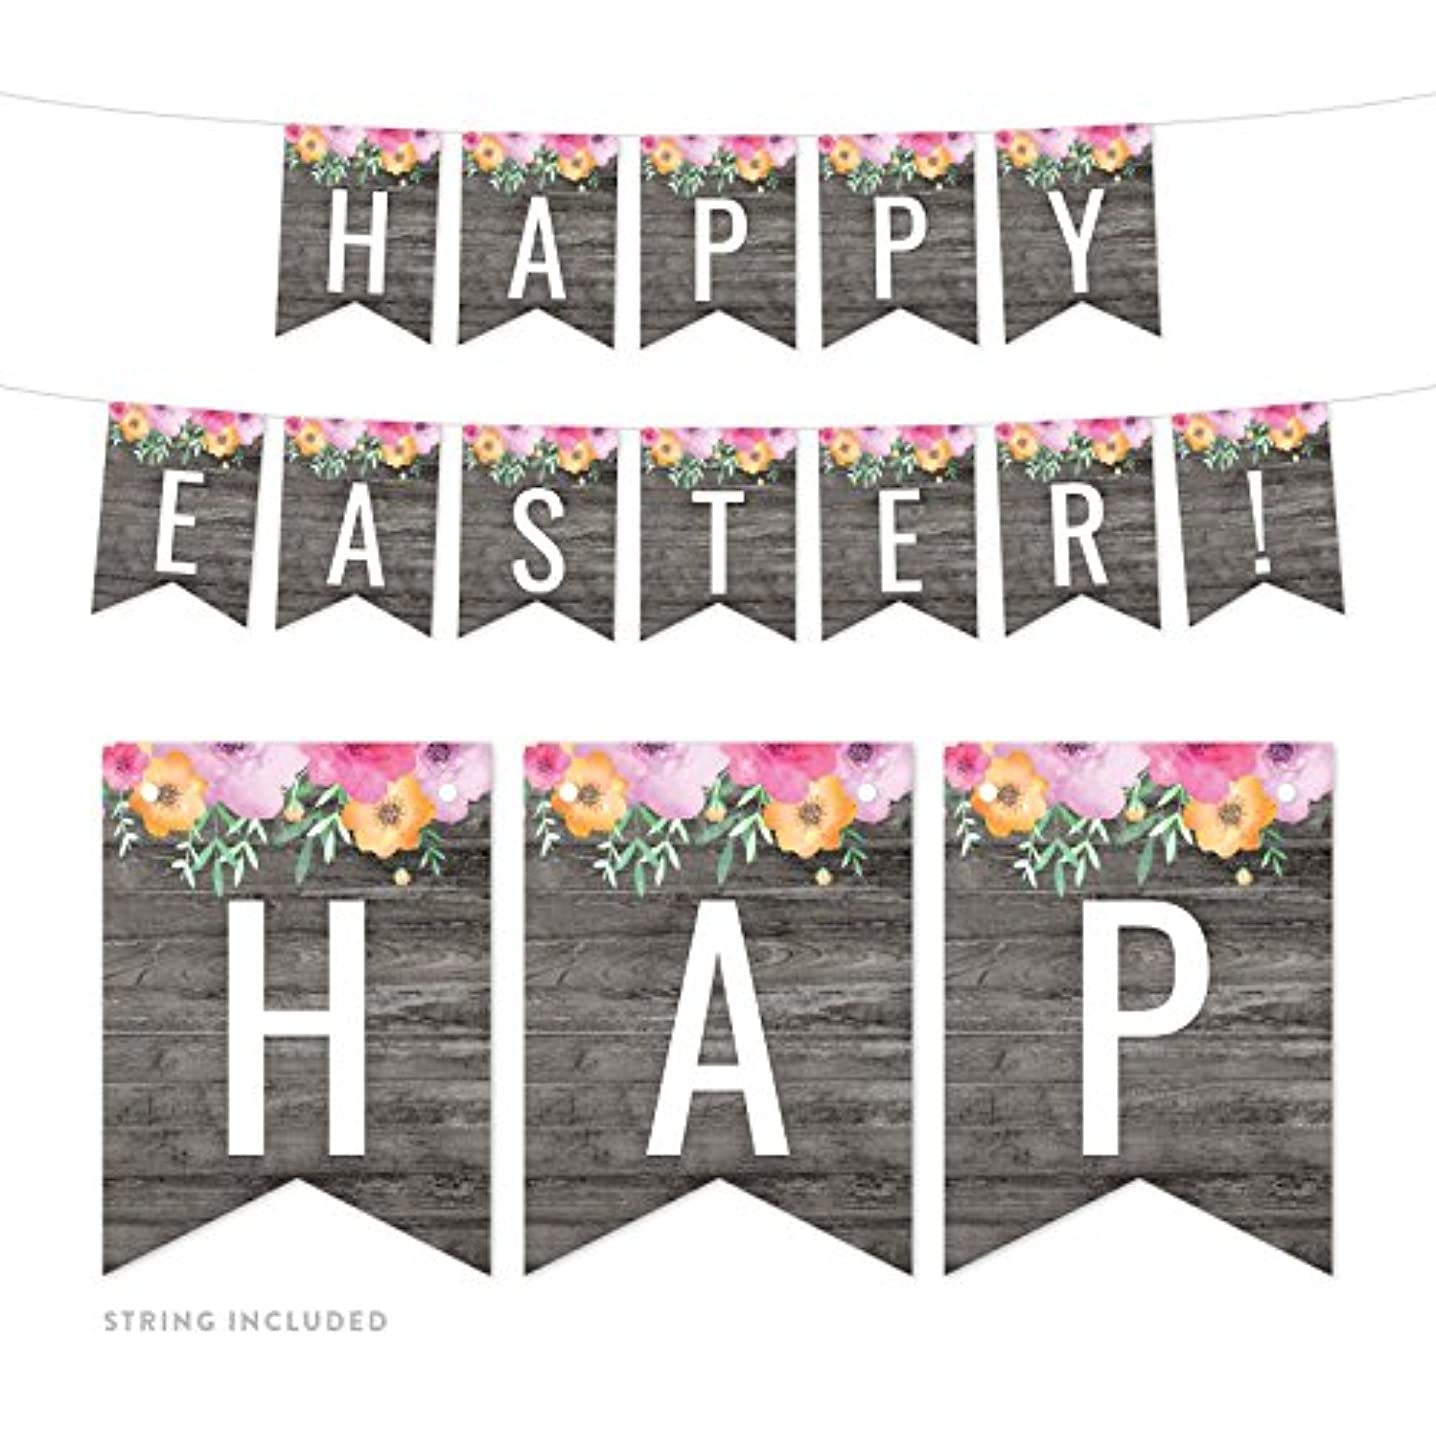 Andaz Press Modern Gray Wood with Flowers Party Banner Decorations, Happy Easter!, Approx 5-Feet, 1-Set, Floral Colored Hanging Pennant Decor